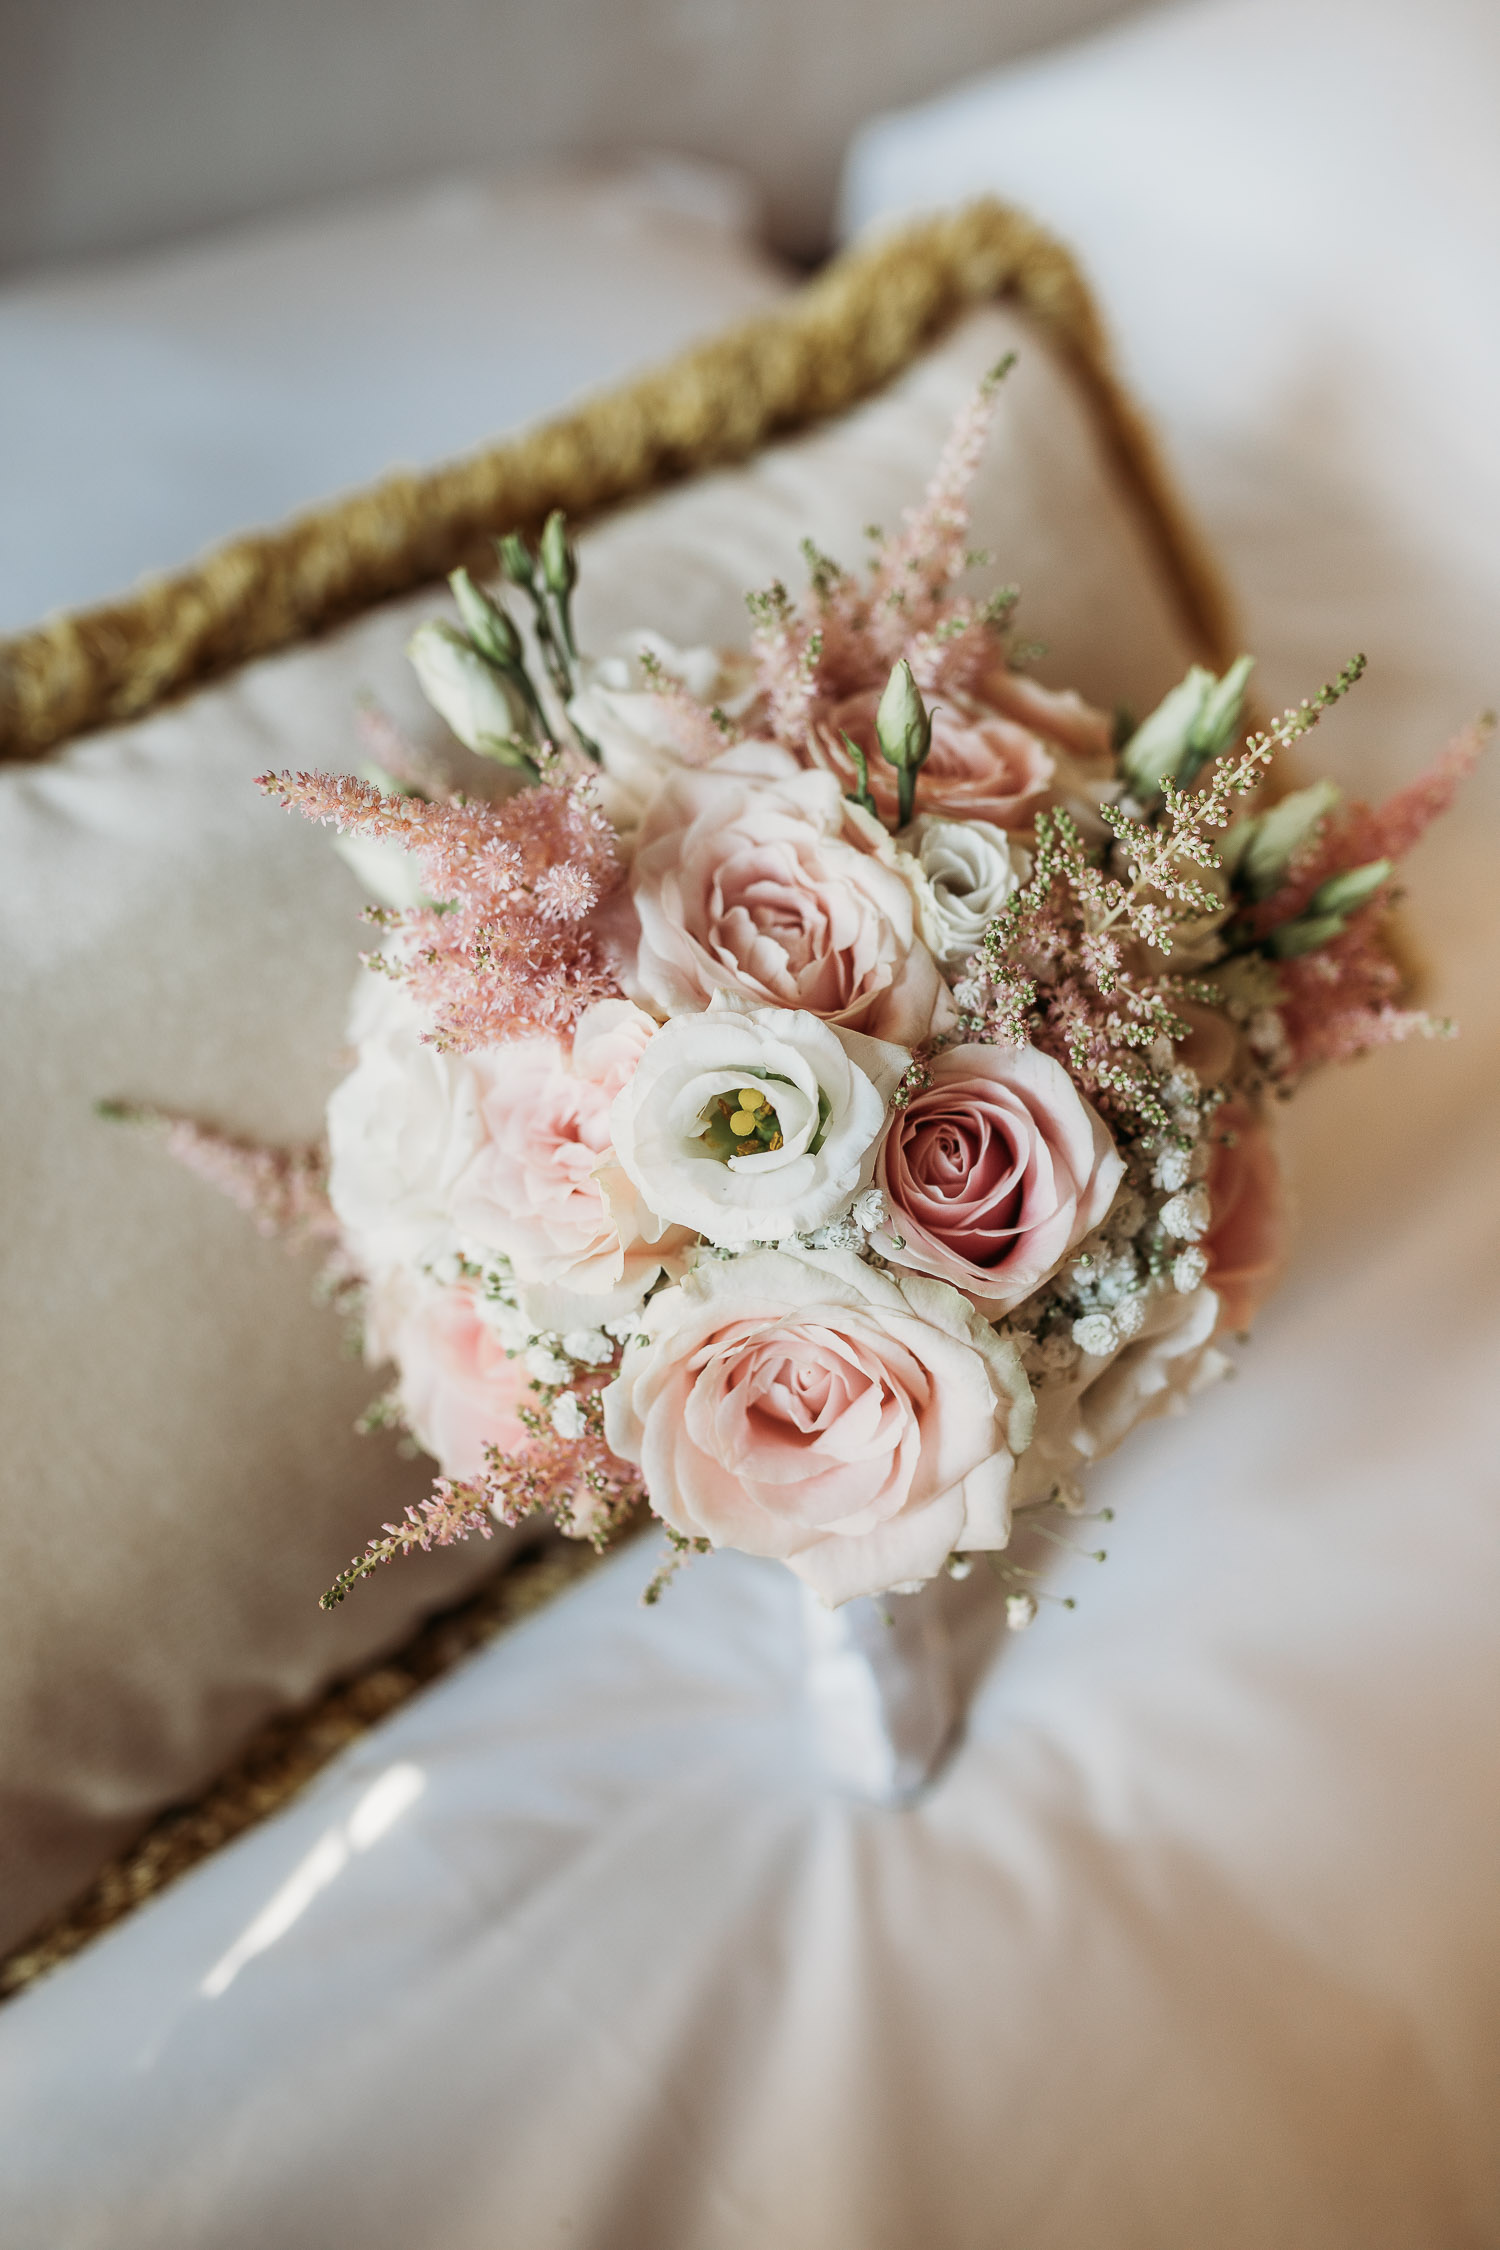 Classic pink and white round wedding bouquet